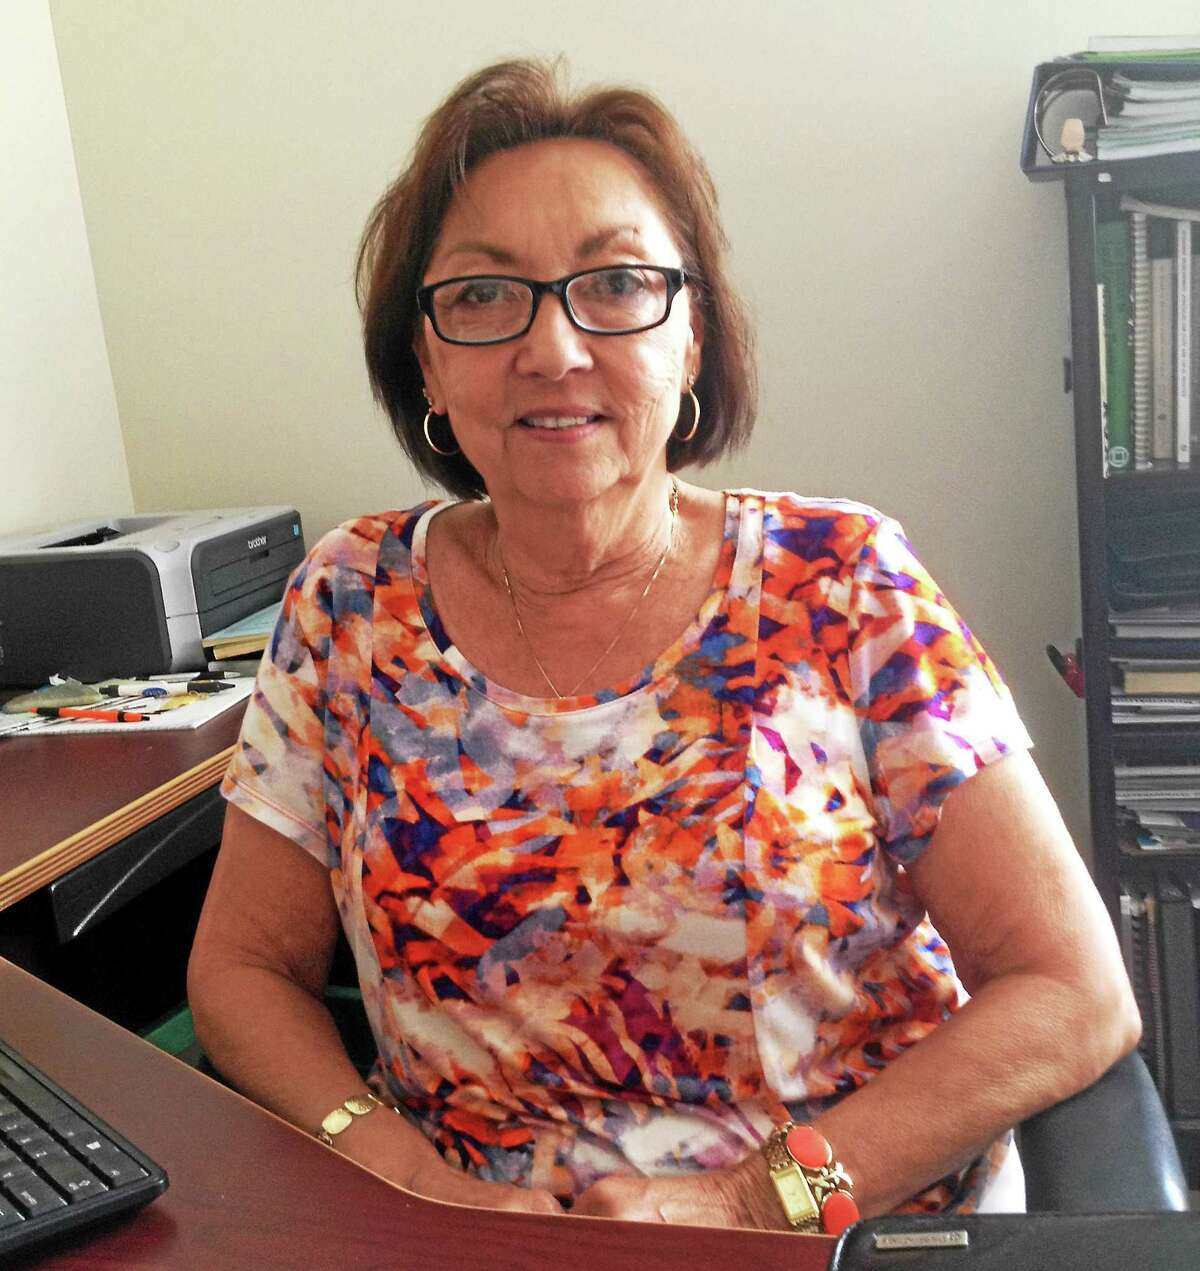 Shirley Jasion, administrative secretary to the Cromwell building and health departments, is leaving her job to spend time with her retired husband and continue their efforts to rescue stray animals.